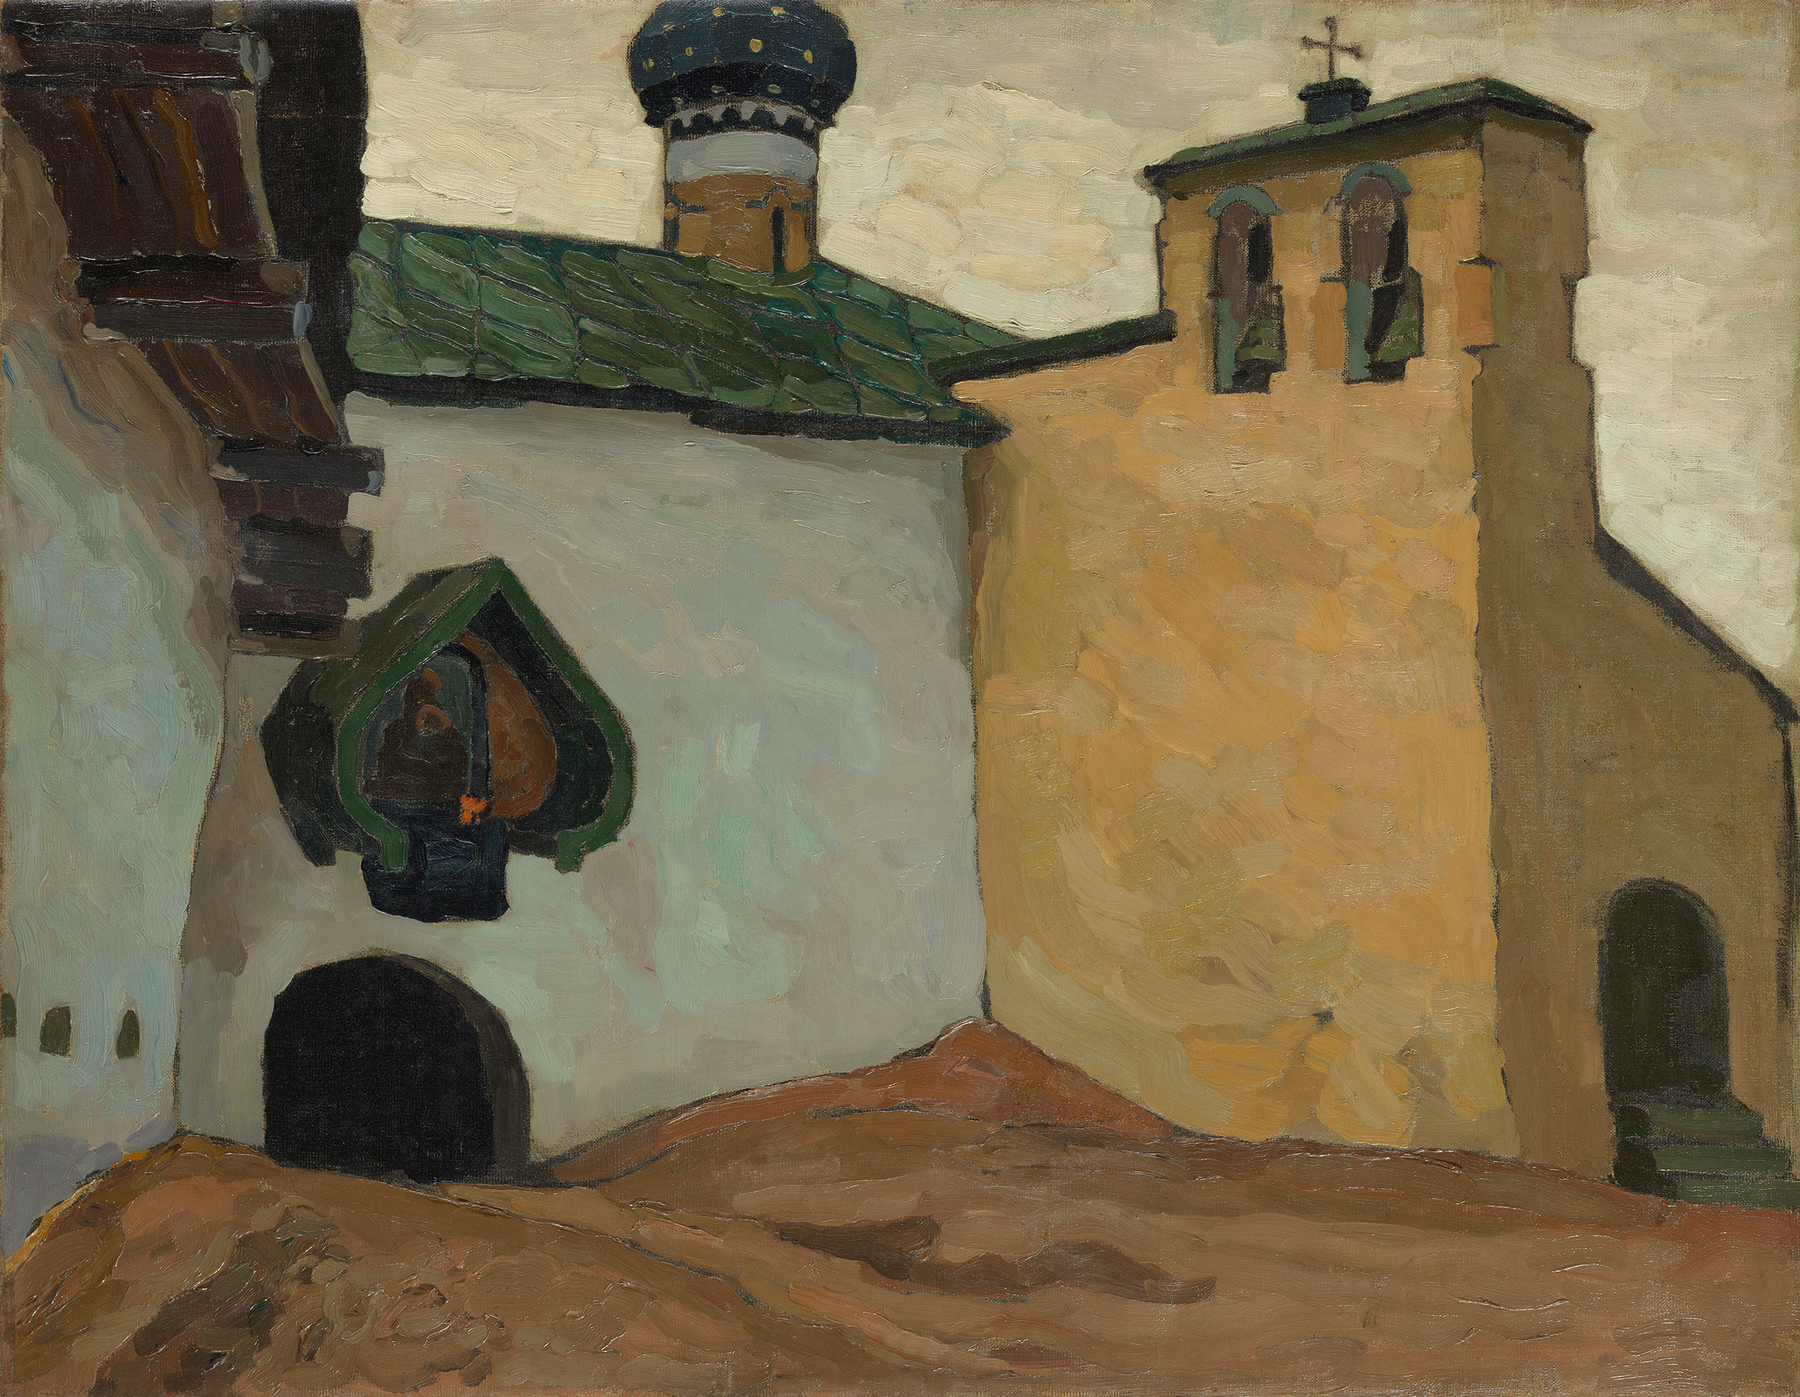 <a href='/en/catalogue/view?id=12611'>Lot 36.</a> ROERICH, NICHOLAS, <i>Pechory Monastery. Internal Exit from the Old Belfry</i><br> 400,000–600,000 GBP.